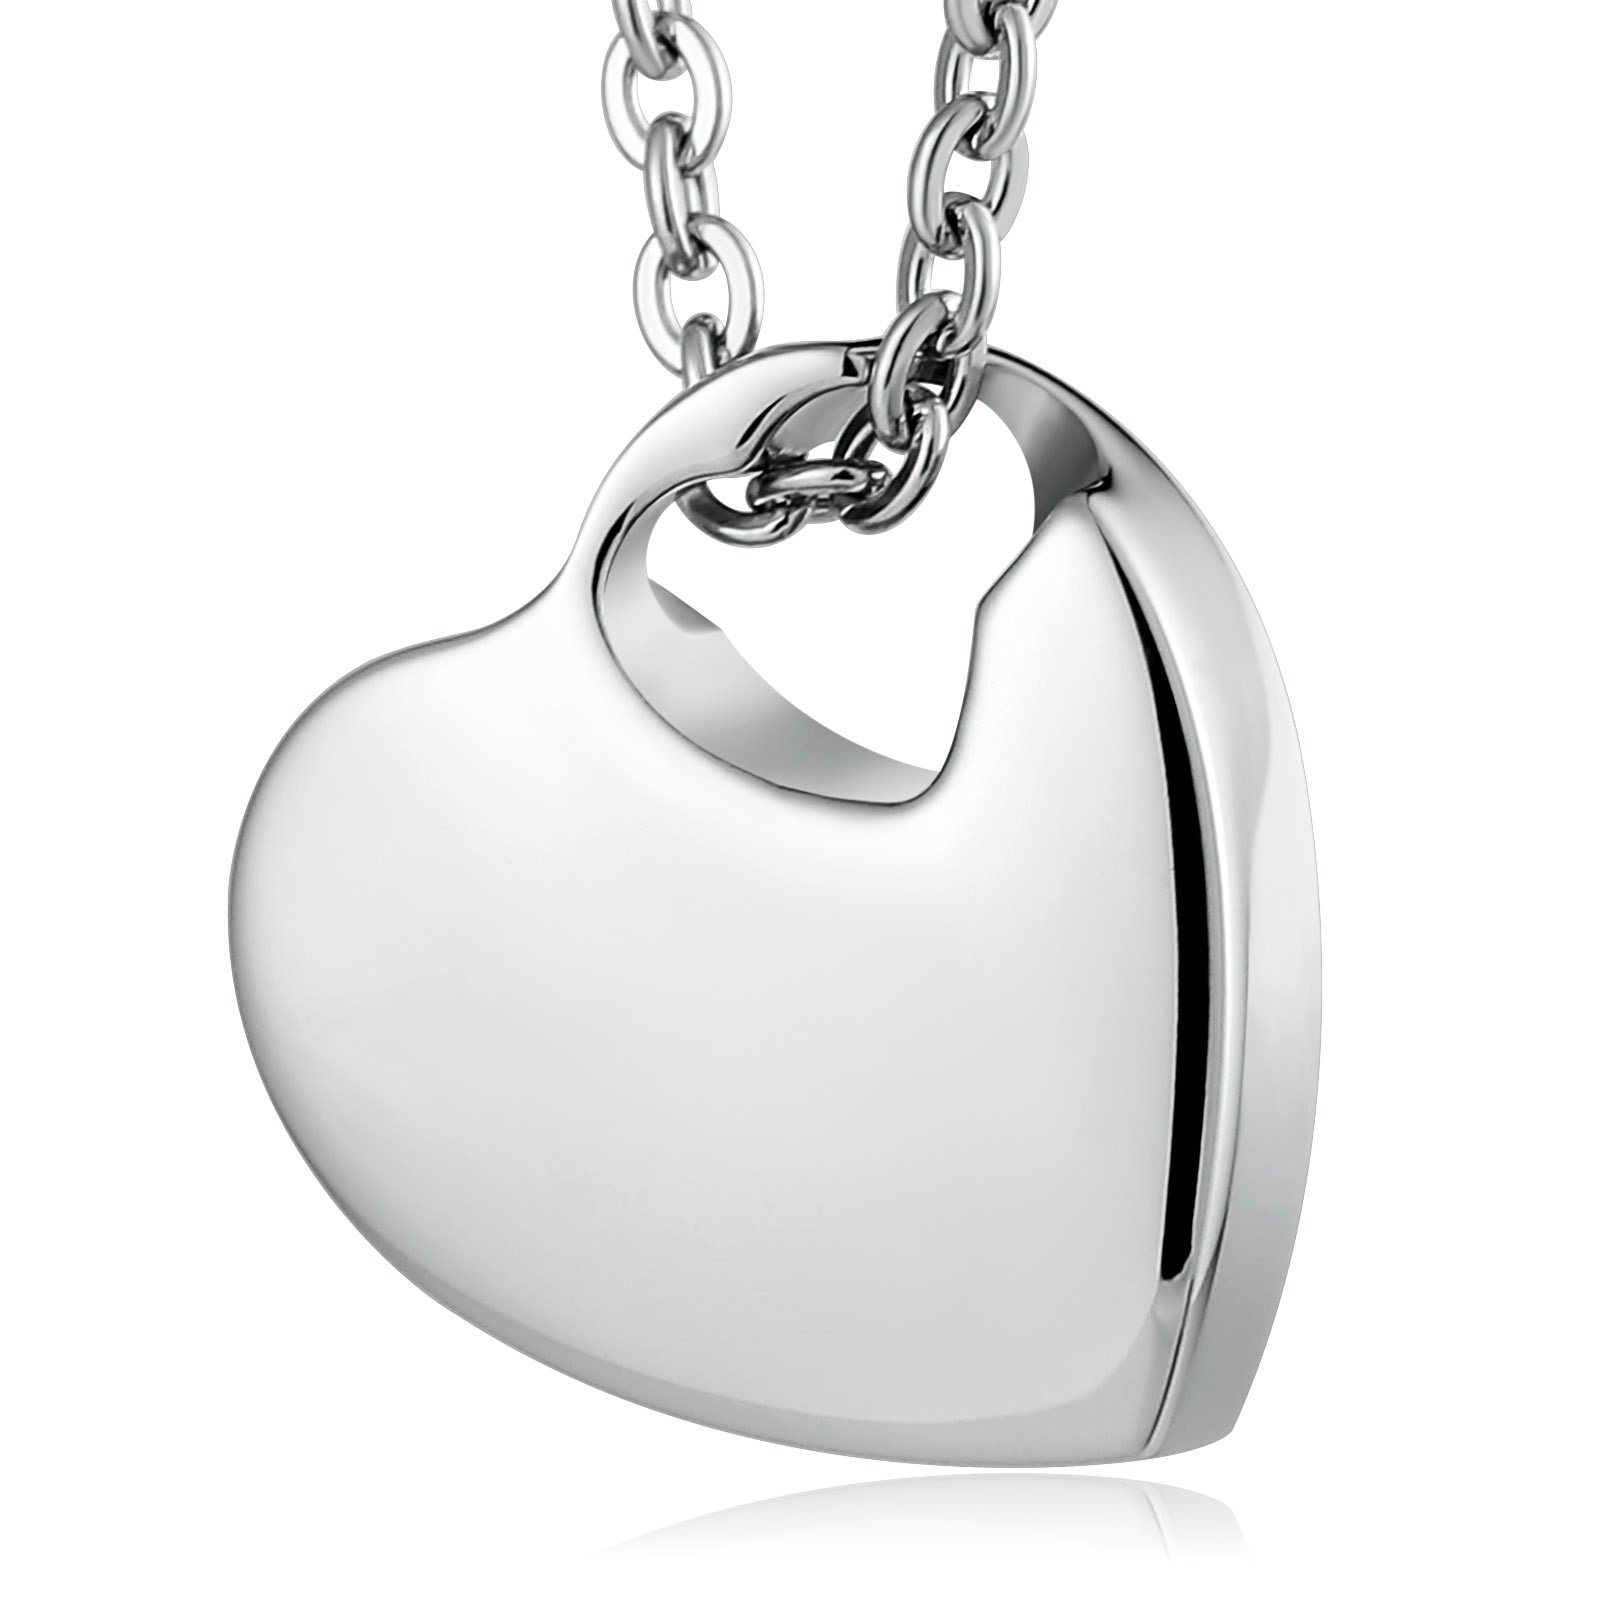 Customized Engraving Stainless Steel Heart Memorial Cremation Urn Pendants Necklace for Ashes